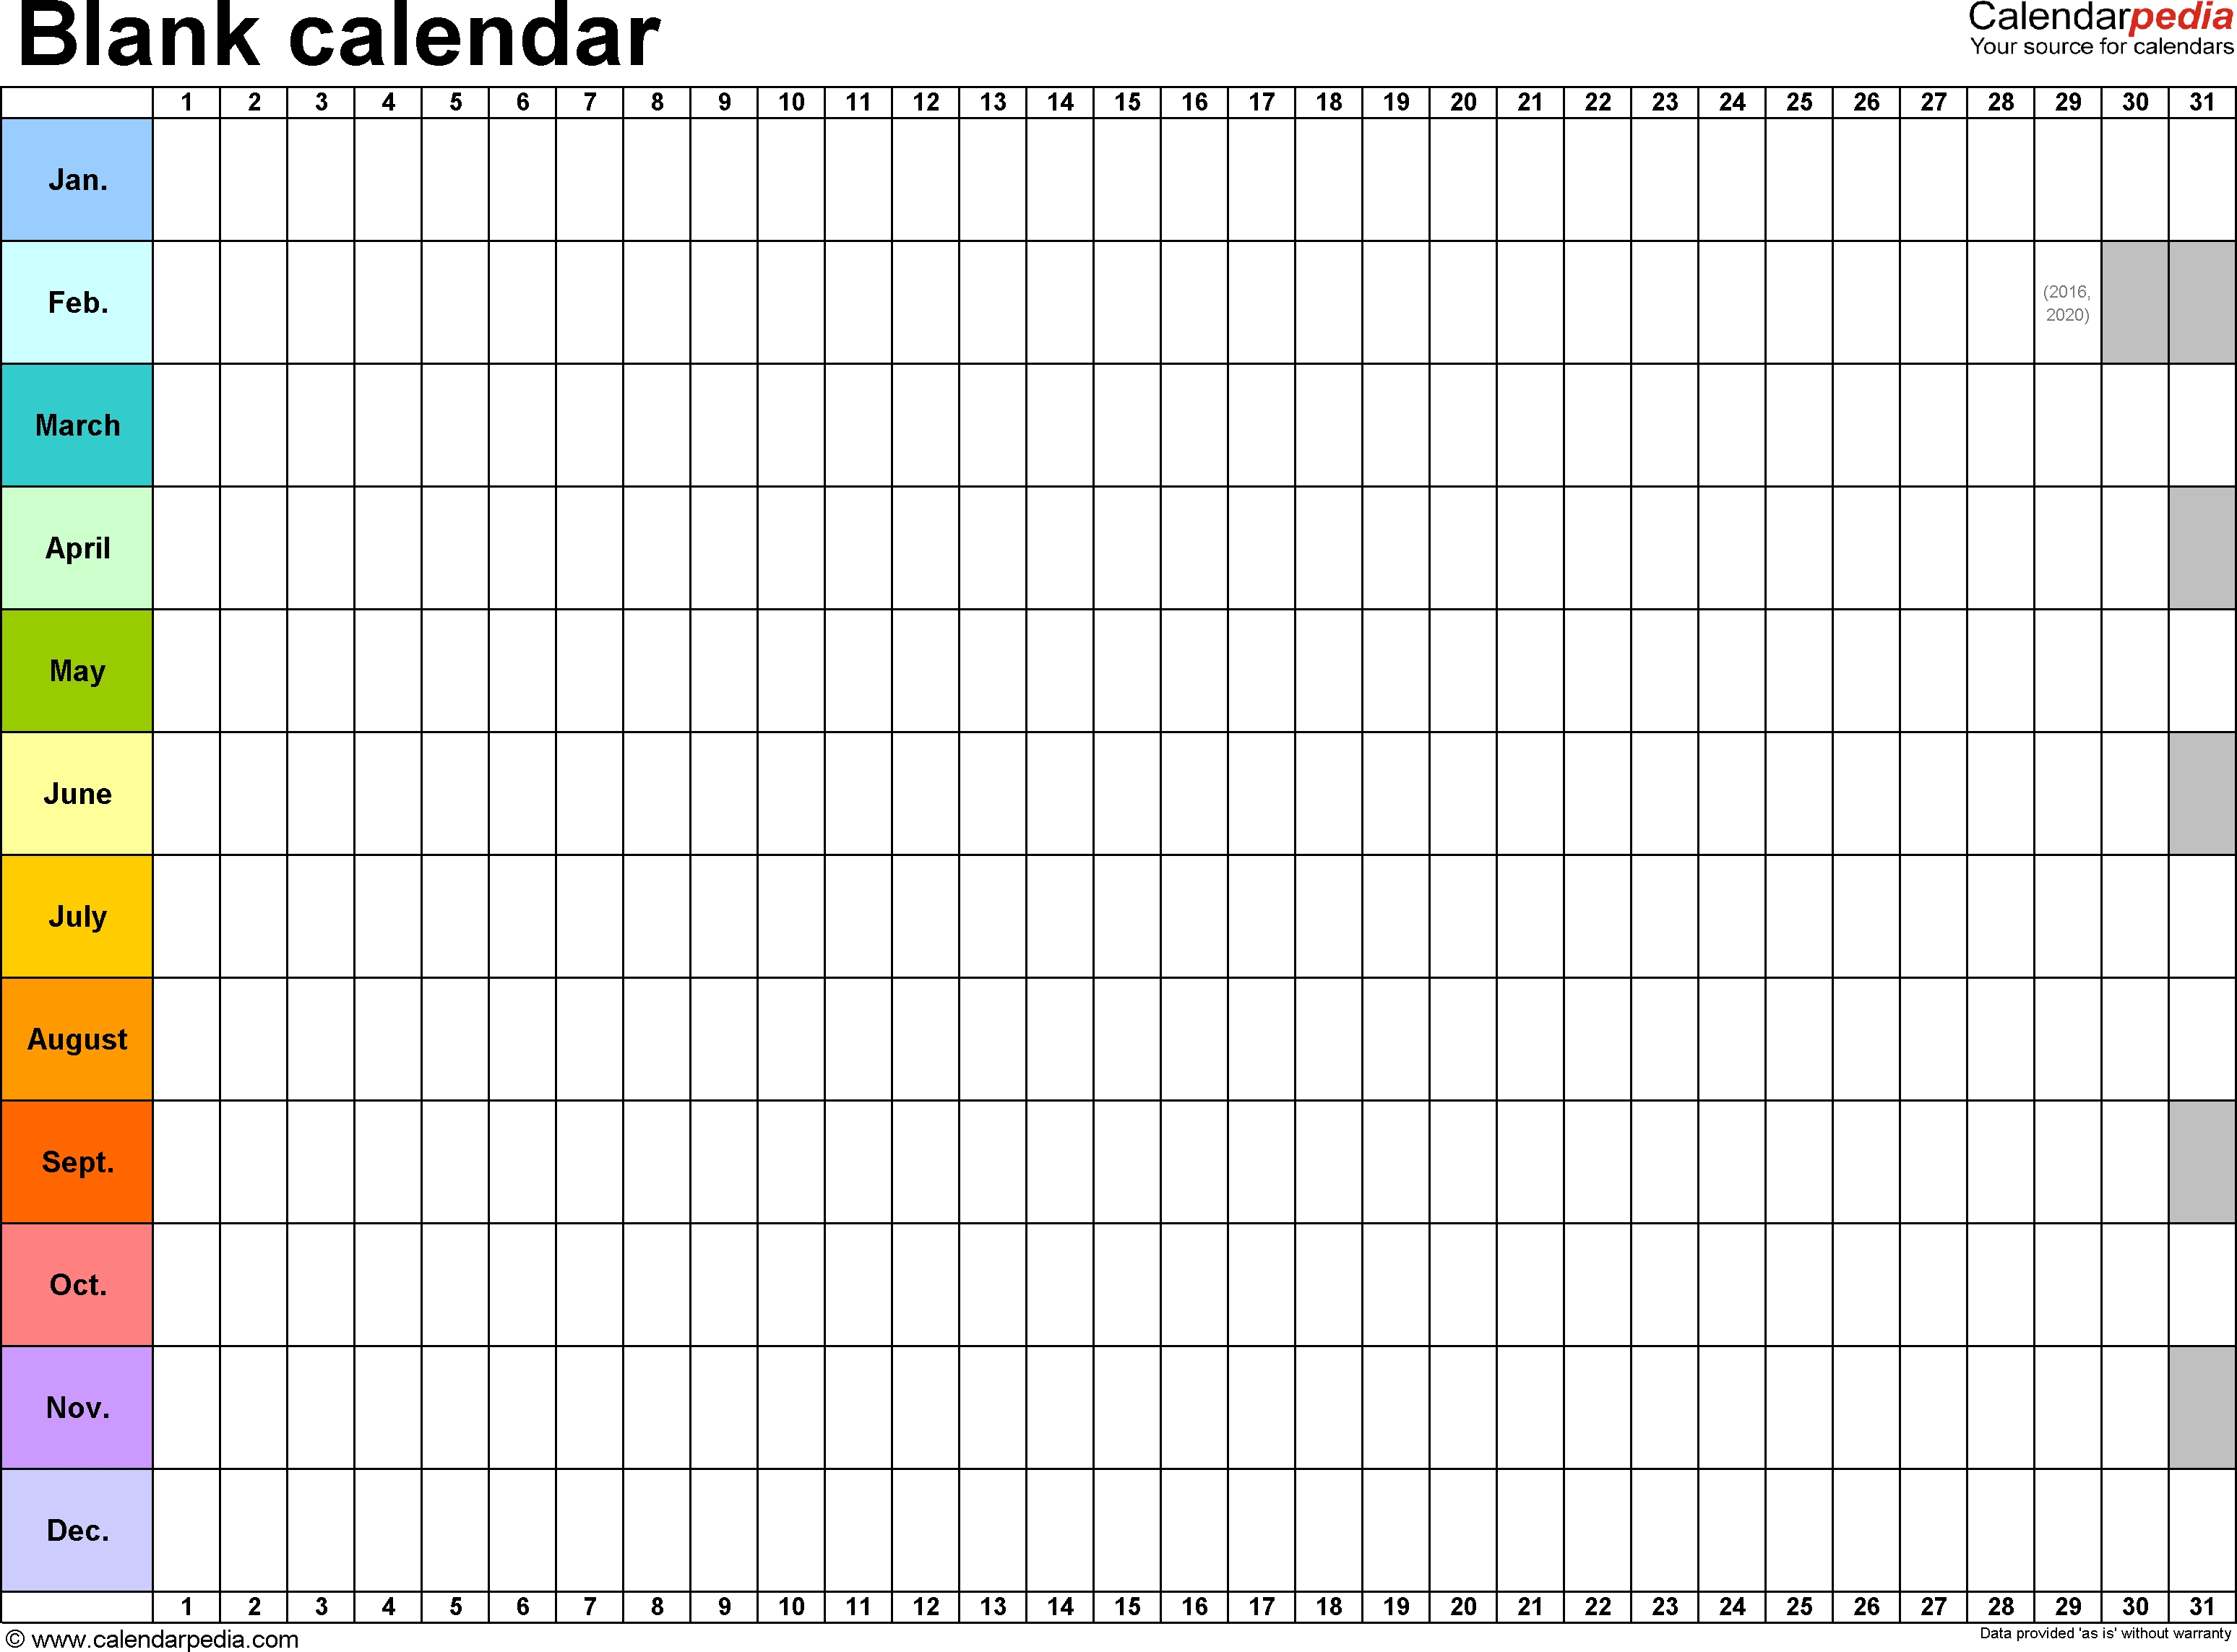 Blank Calendar - 9 Free Printable Microsoft Word Templates  Free Printable Blank Calendars To Fill In